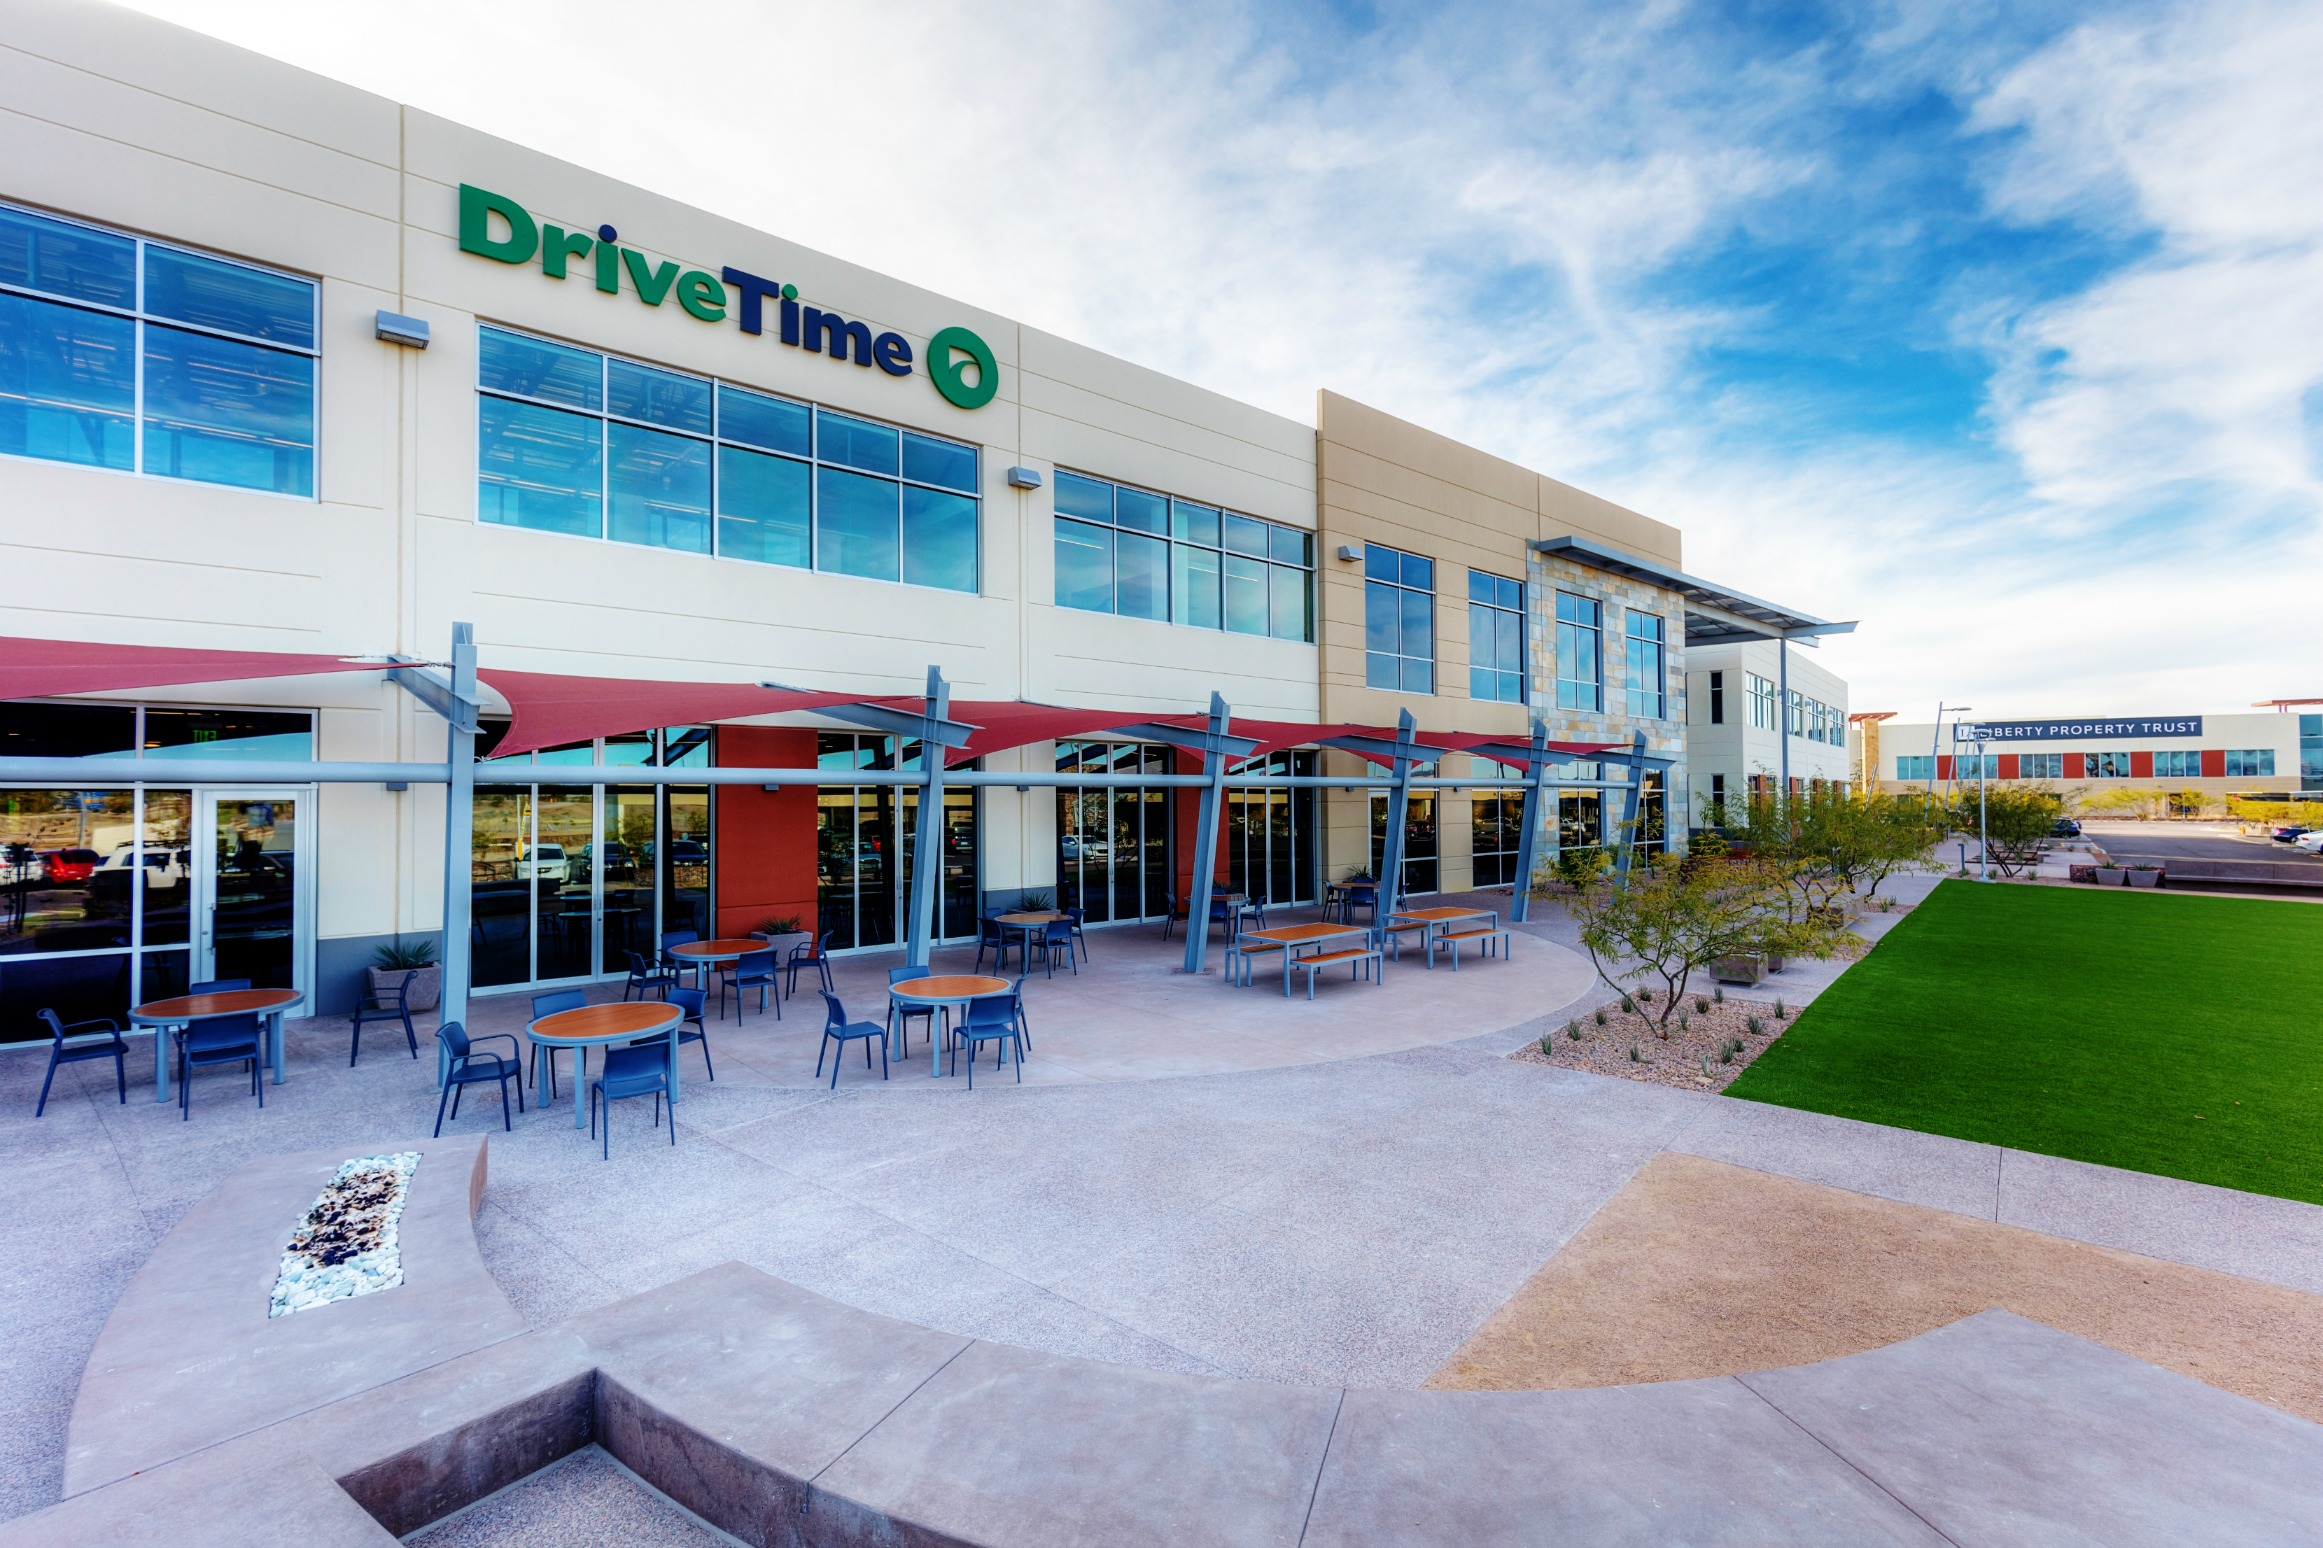 DriveTime CEO Succession Planning Process Underway